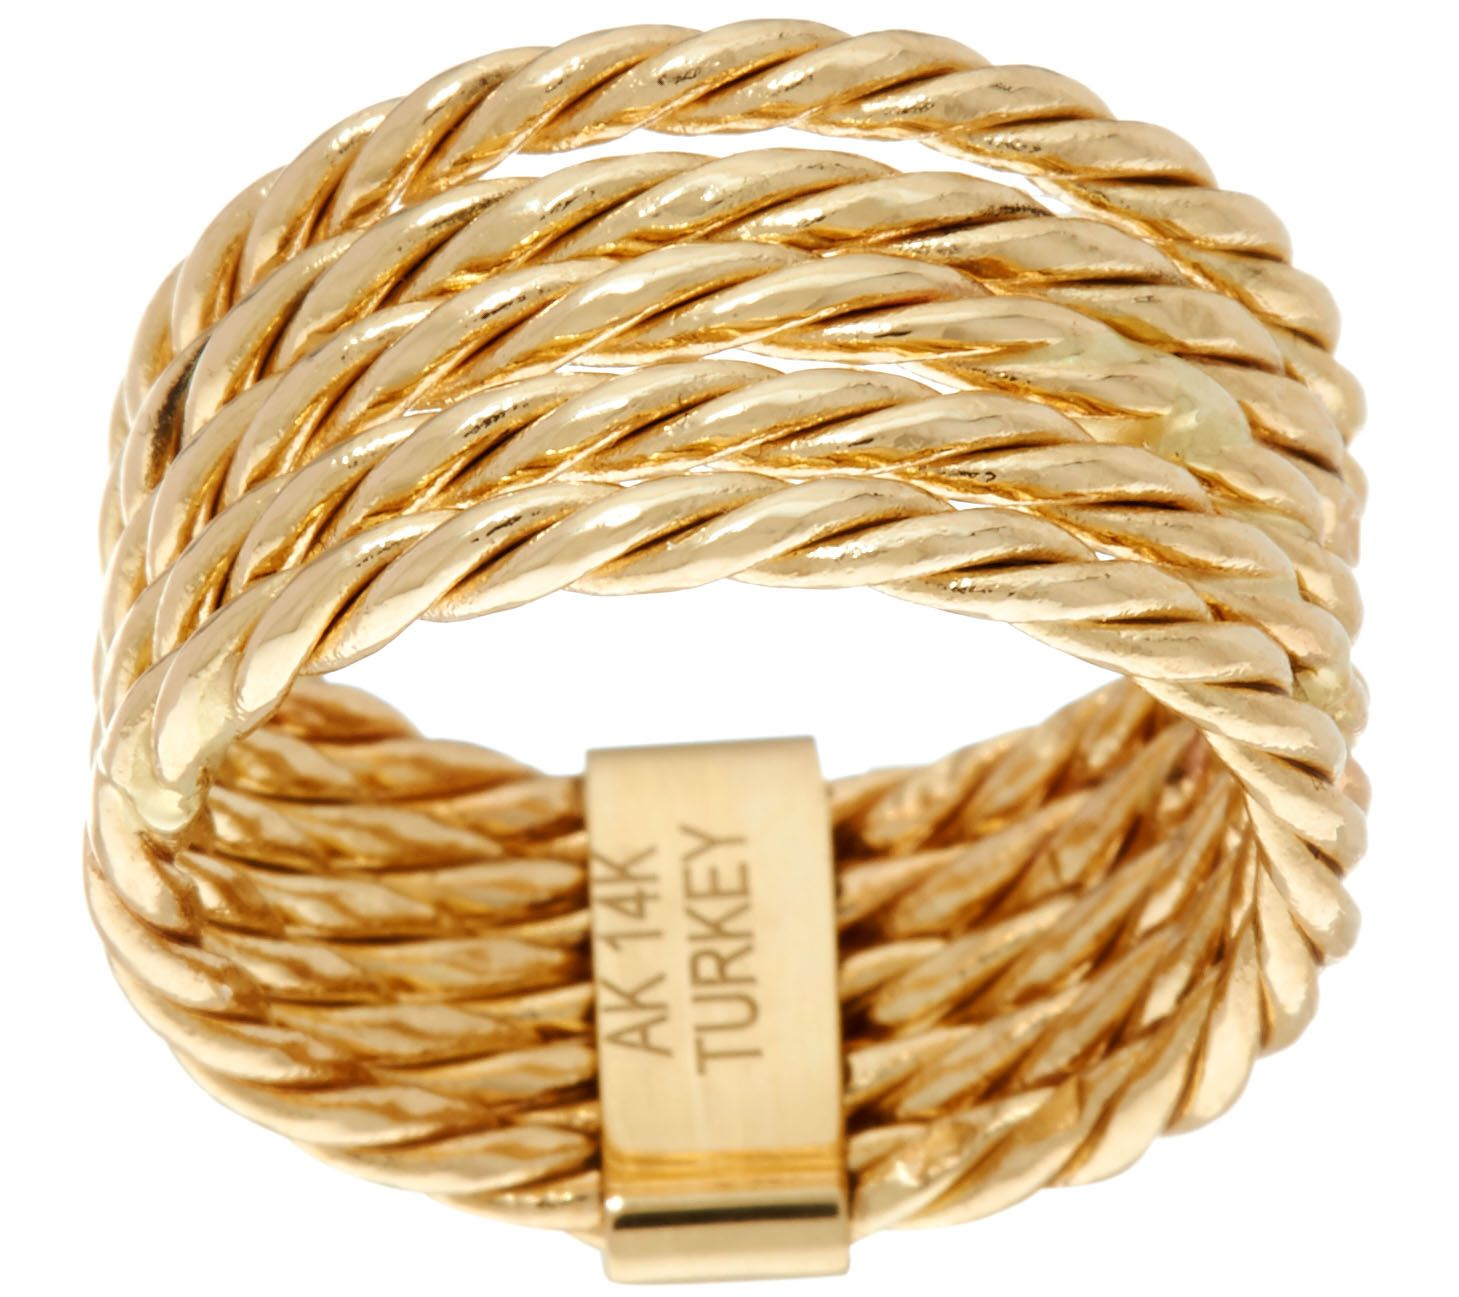 Polished 5-Row Rope Design Stack Ring Real 14K Yellow Gold QVC Sz 5